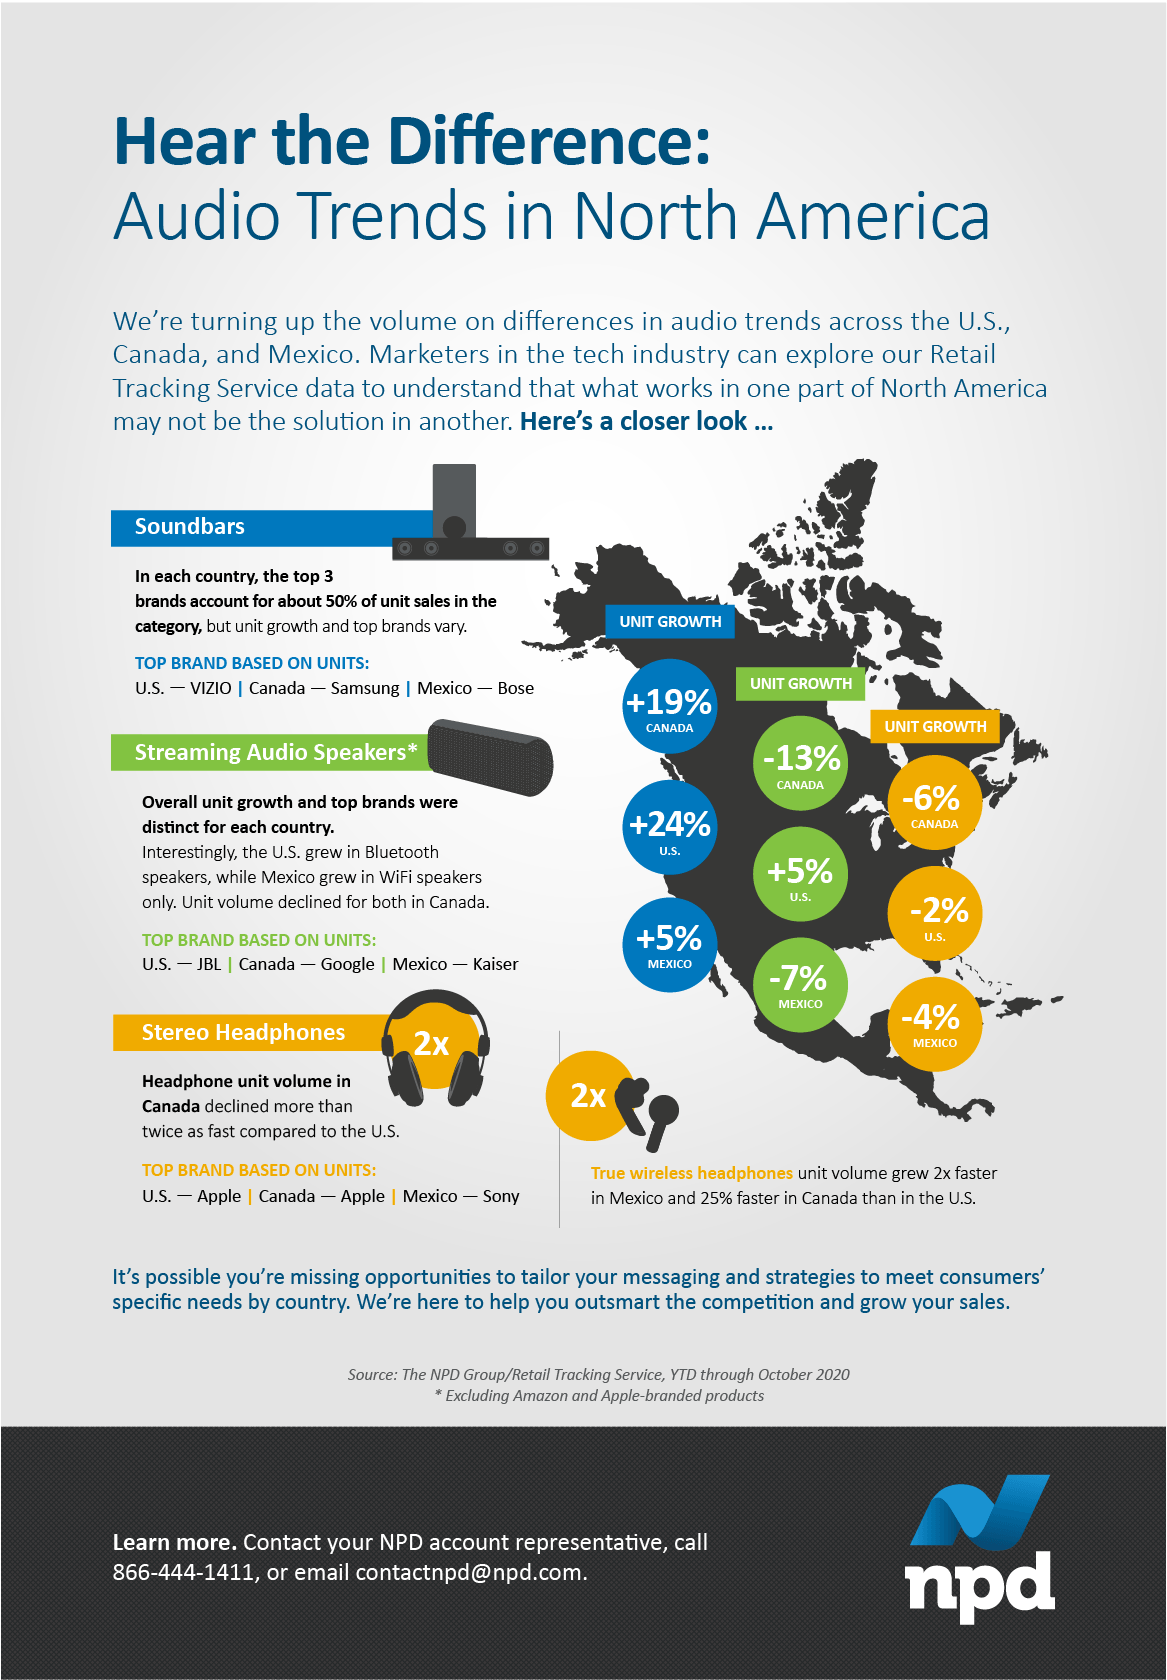 We're turning up the volume on differences in audio trends across the U.S., Canada, and Mexico.